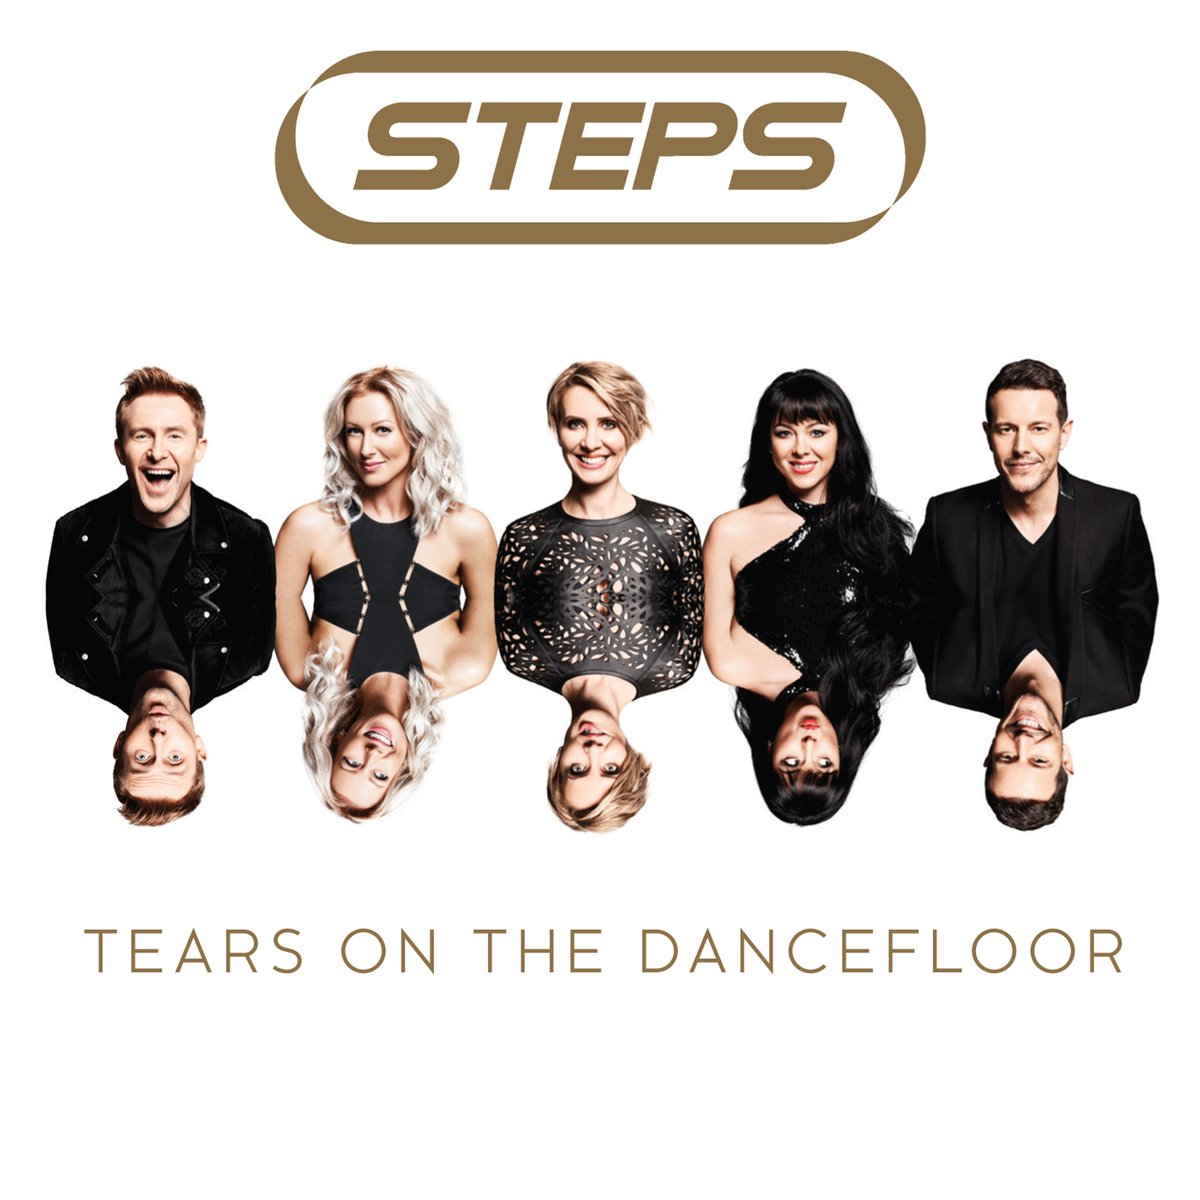 The news is out! The new album Tears On The Dancefloor arrives April 21! #20YearsOfSteps https://t.co/eeKeAhd2nM